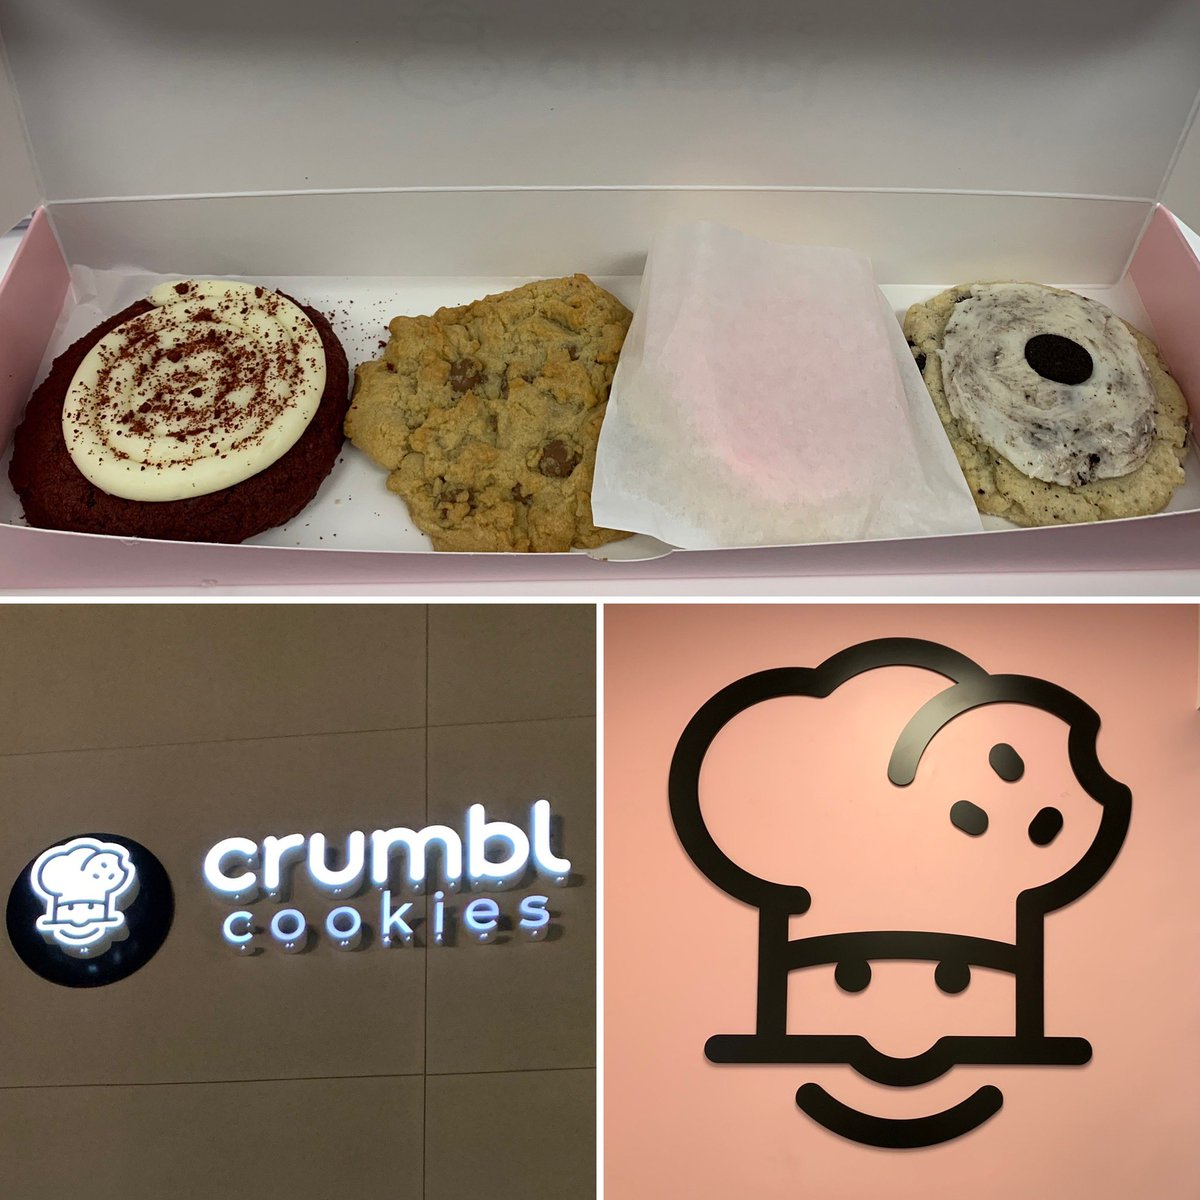 Happy #NationalCookieDay 😋 Wake up with #CKandCarmen and win cookies from @CrumblCookies at Herndon and Fowler in Clovis 🍪